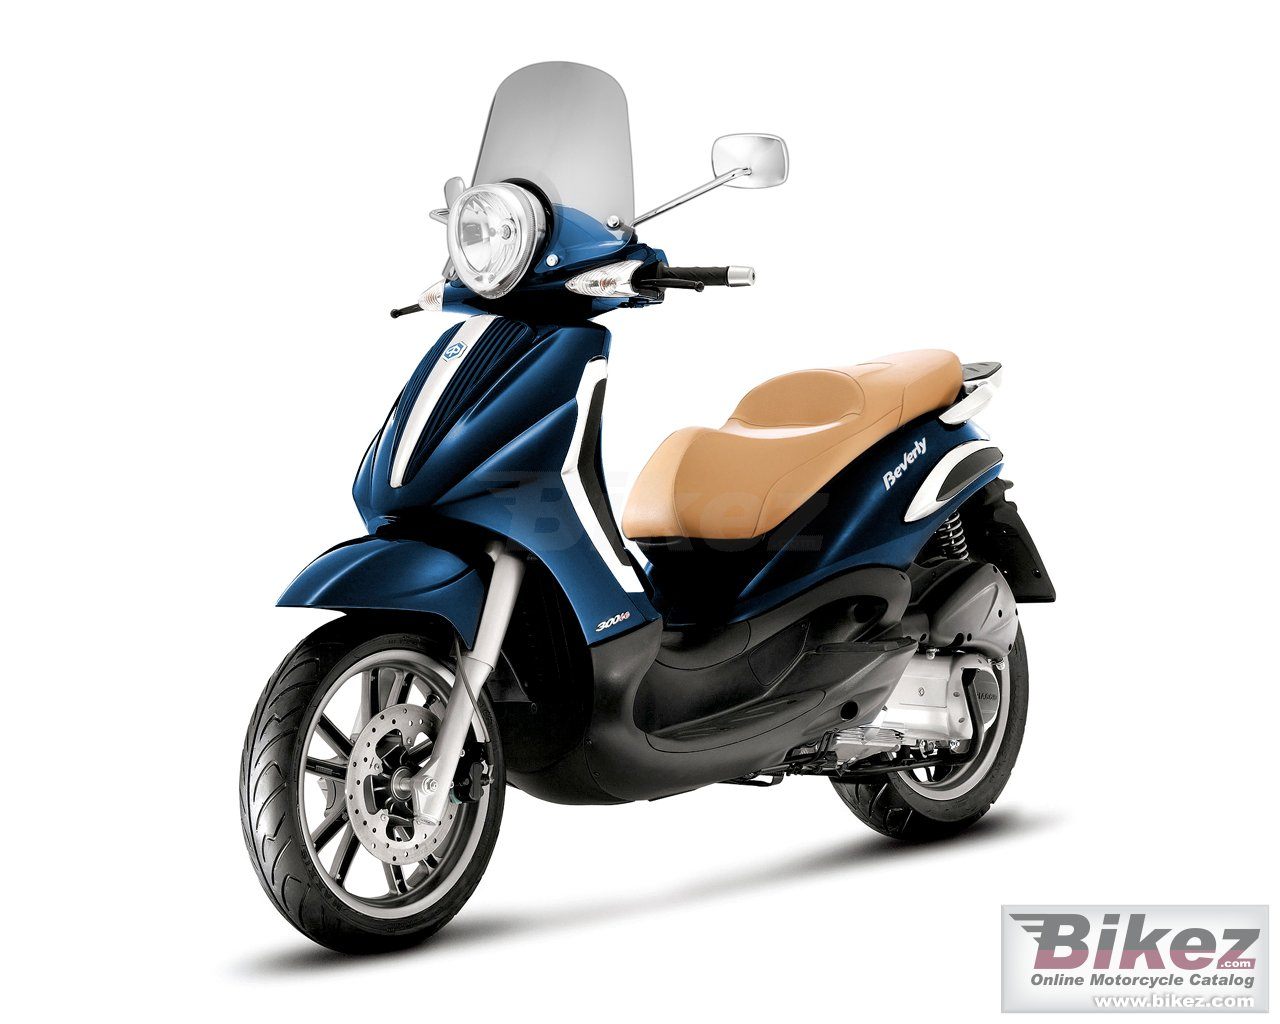 Big Piaggio bv tourer 300 picture and wallpaper from Bikez.com